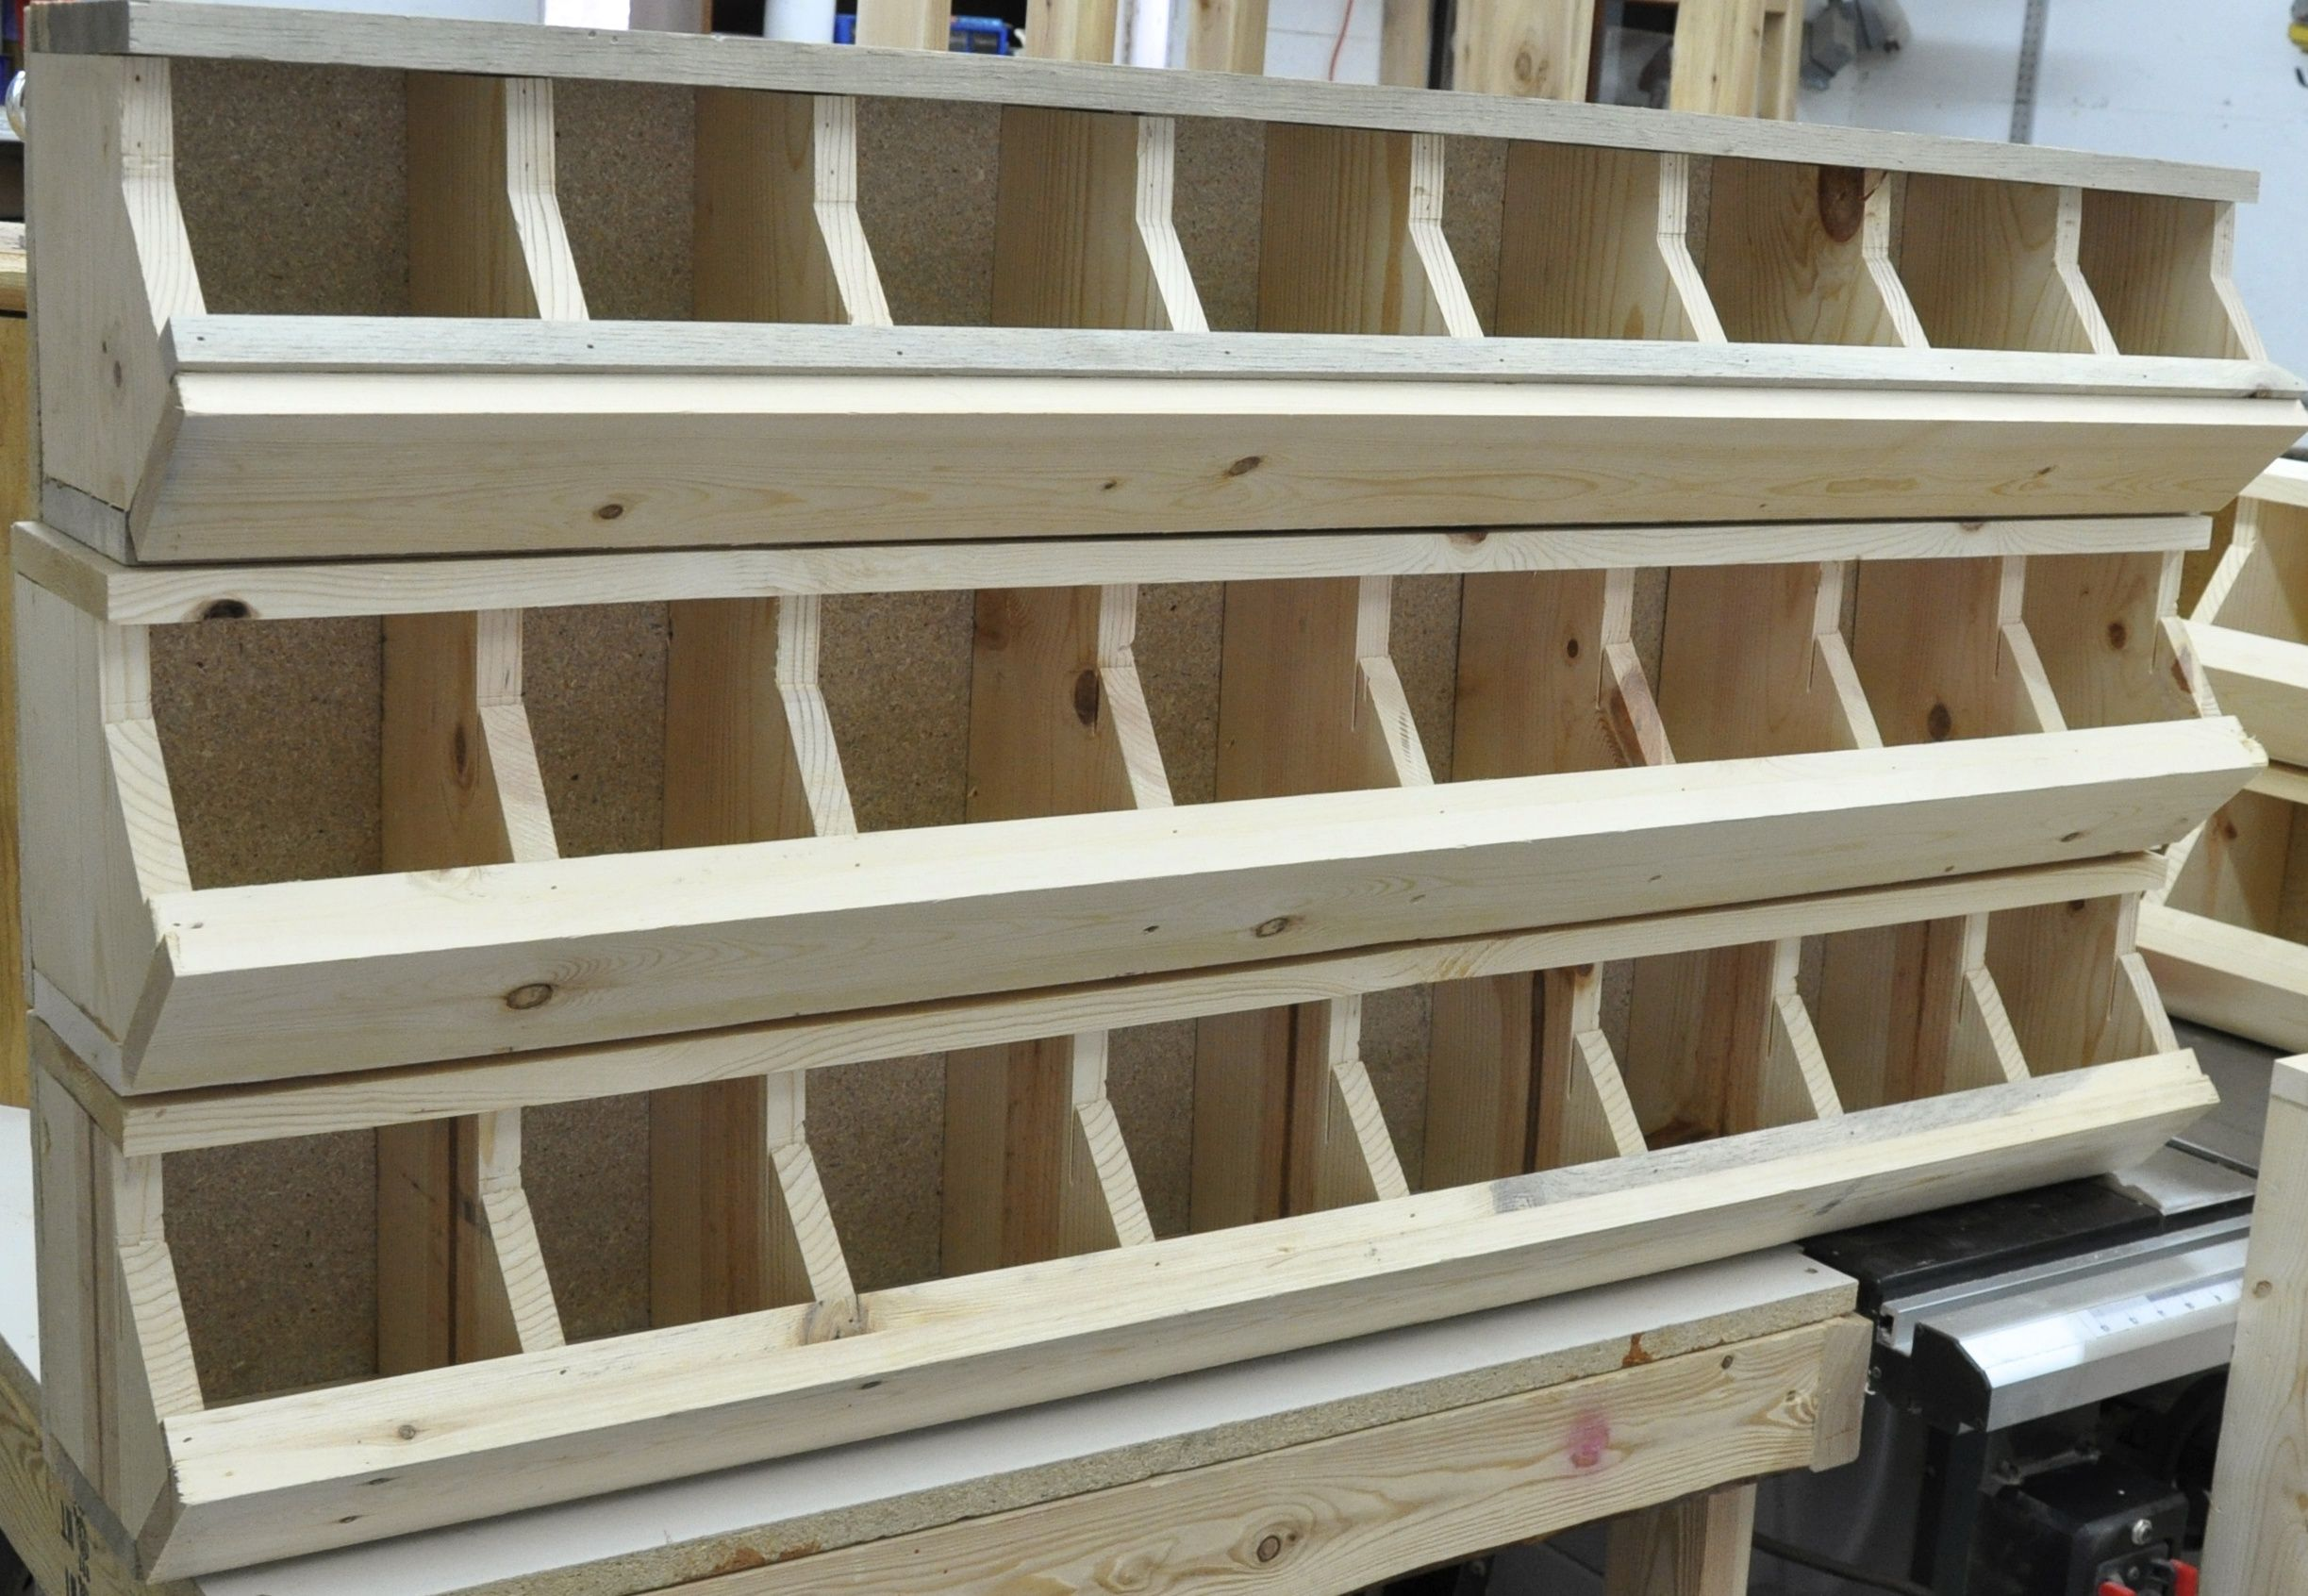 these bolt bins are reproduced from a 1912 copy | work shop